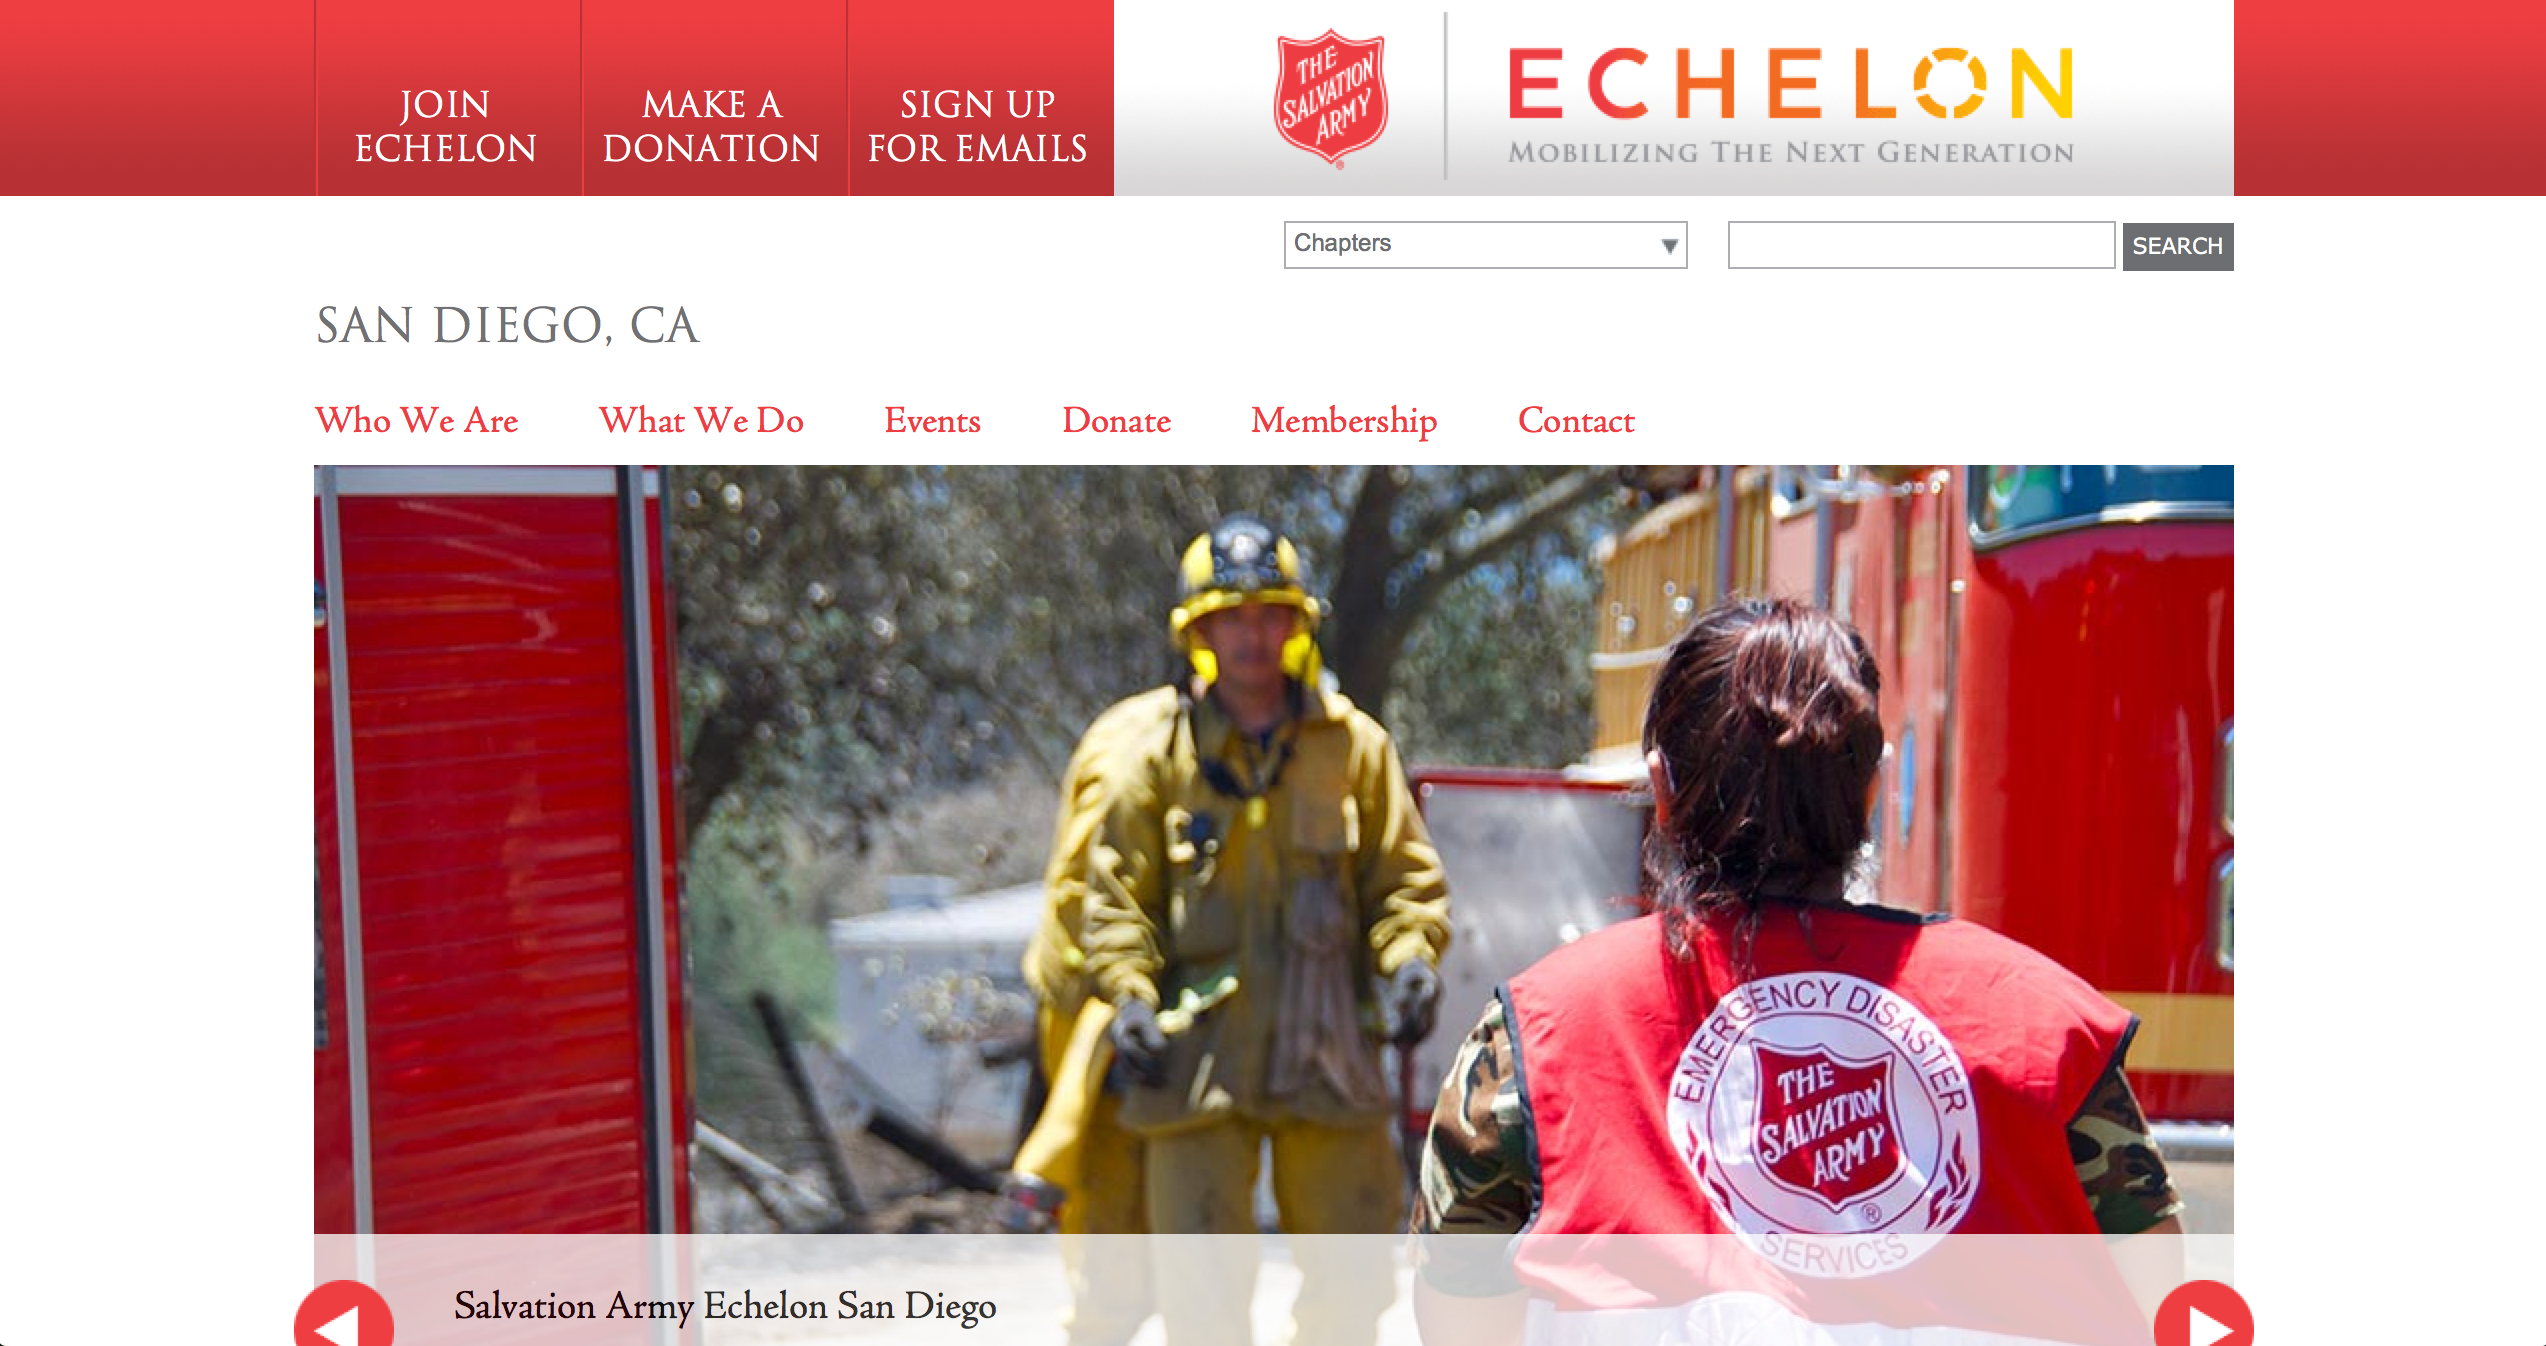 Salvation Army Echelon San Diego